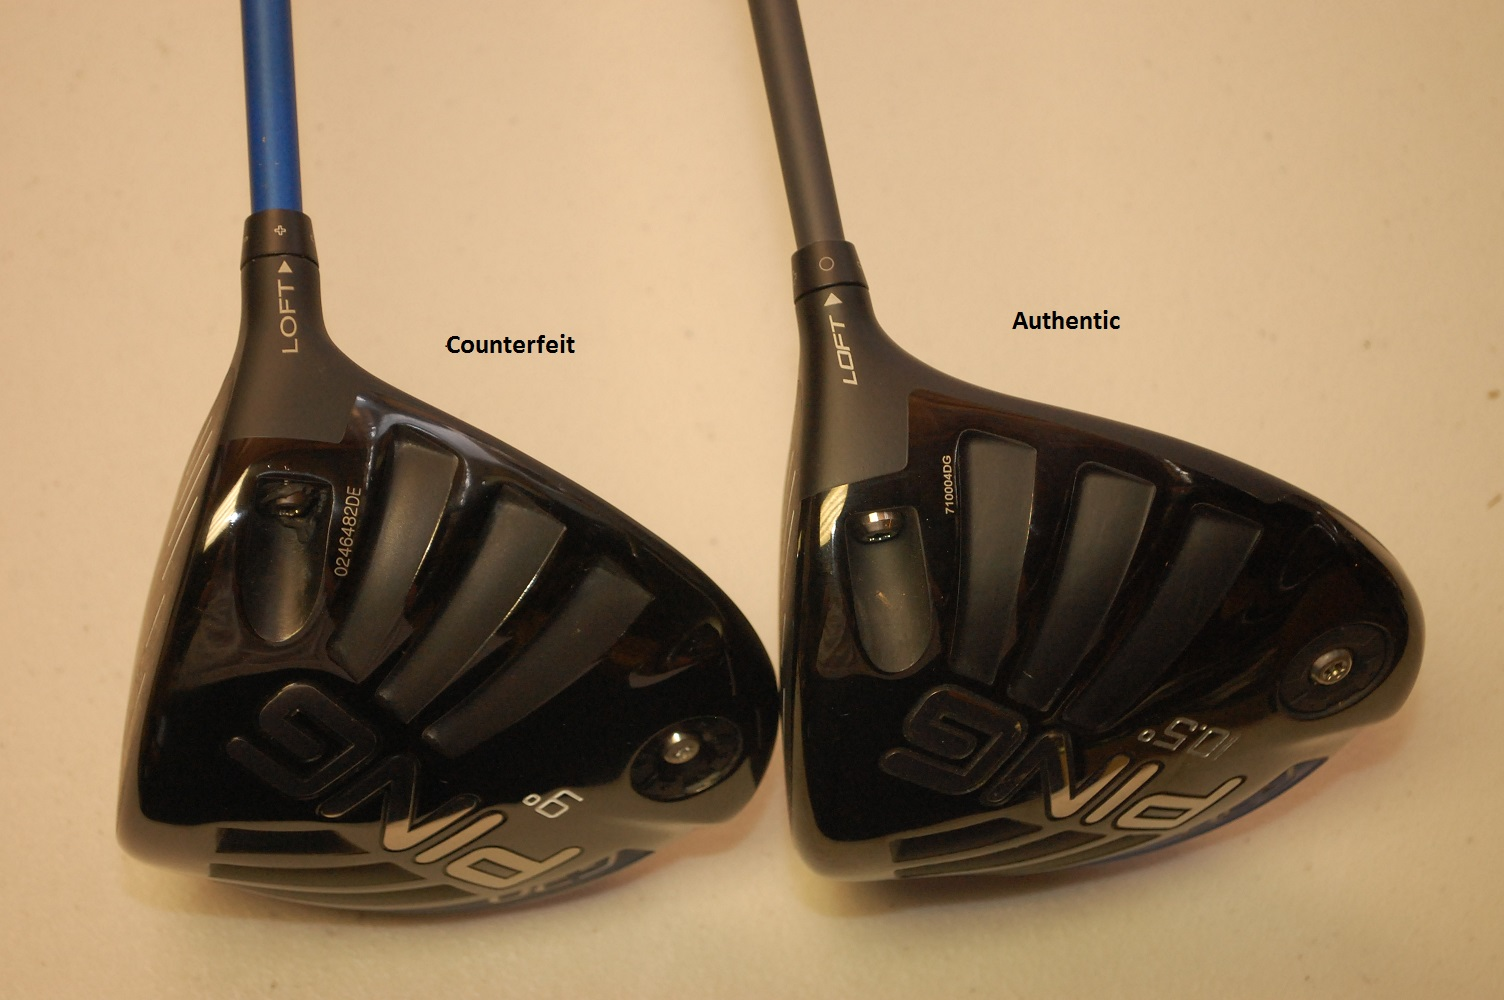 counterfeit mizuno golf clubs